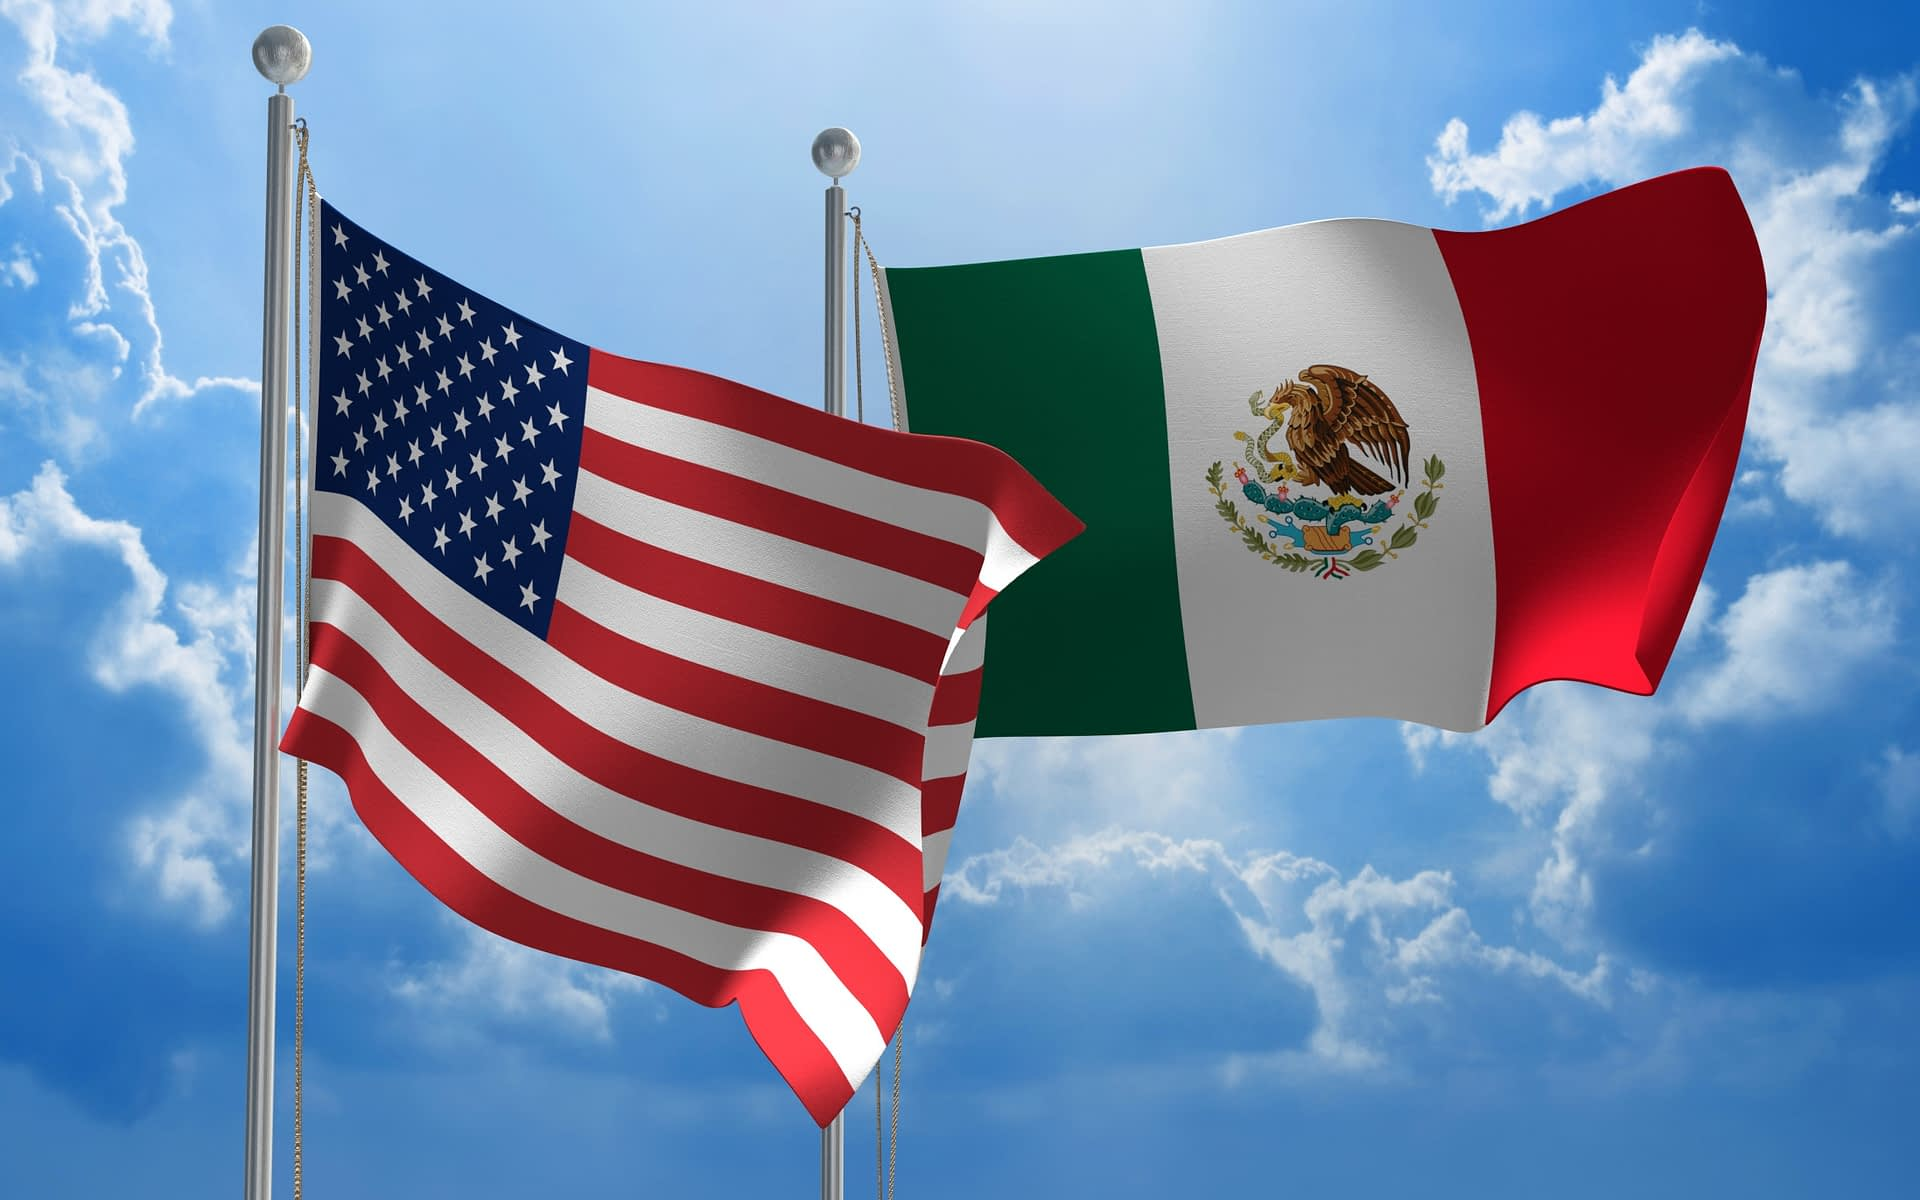 Mexico remains as the U.S.'s main trading partner